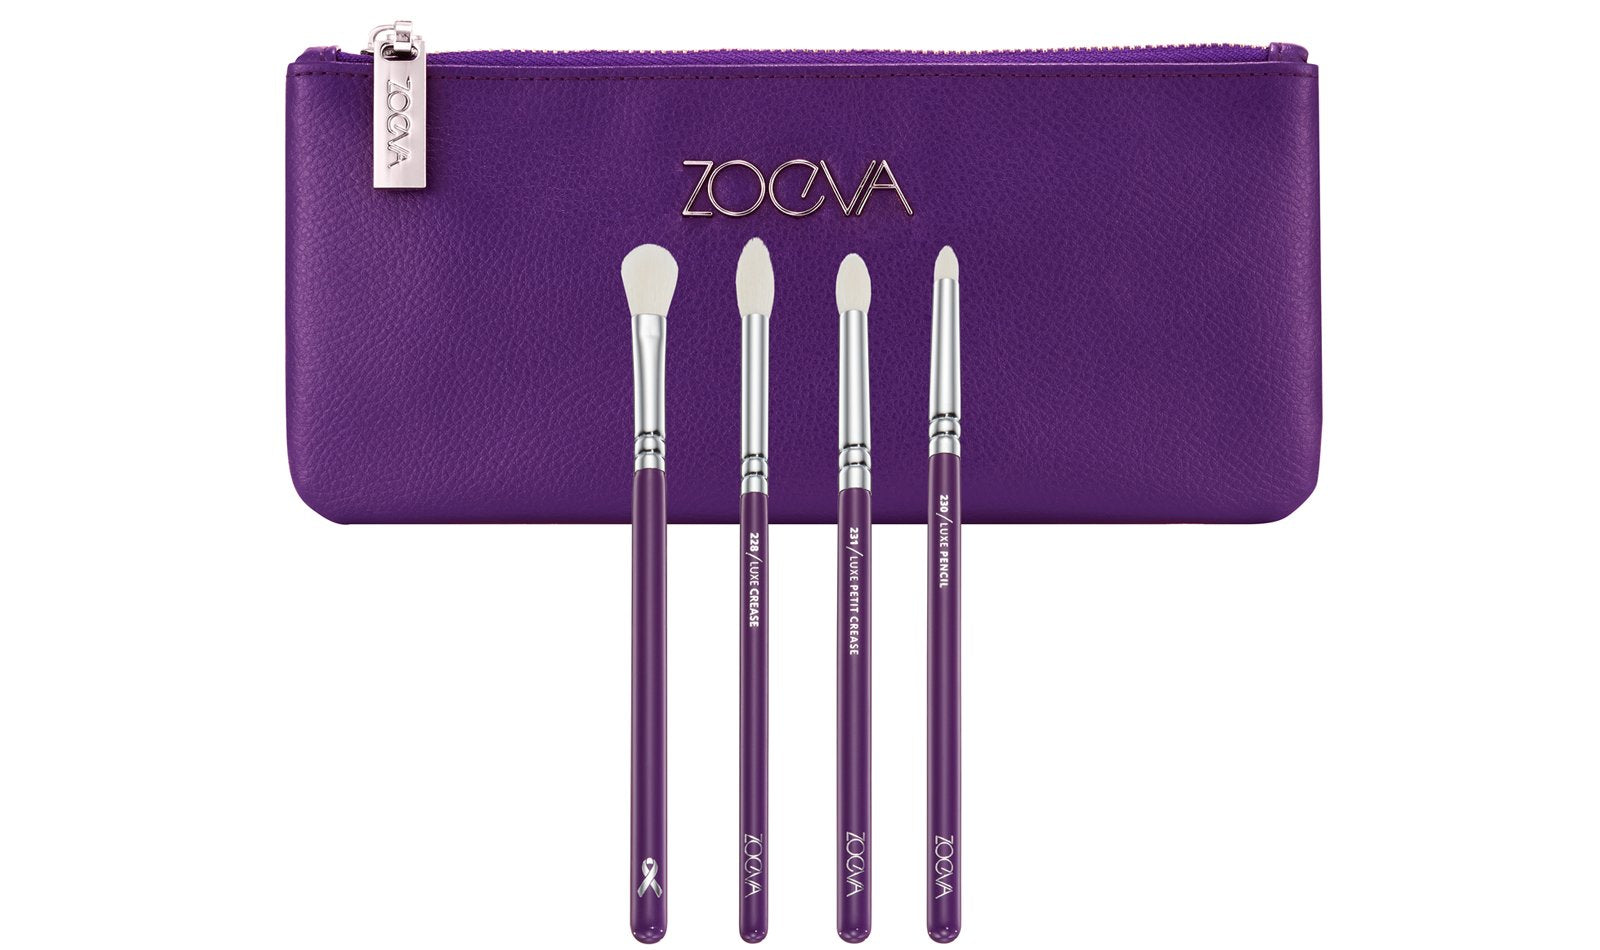 POSITIVELY BEAUTIFUL BRUSH SET